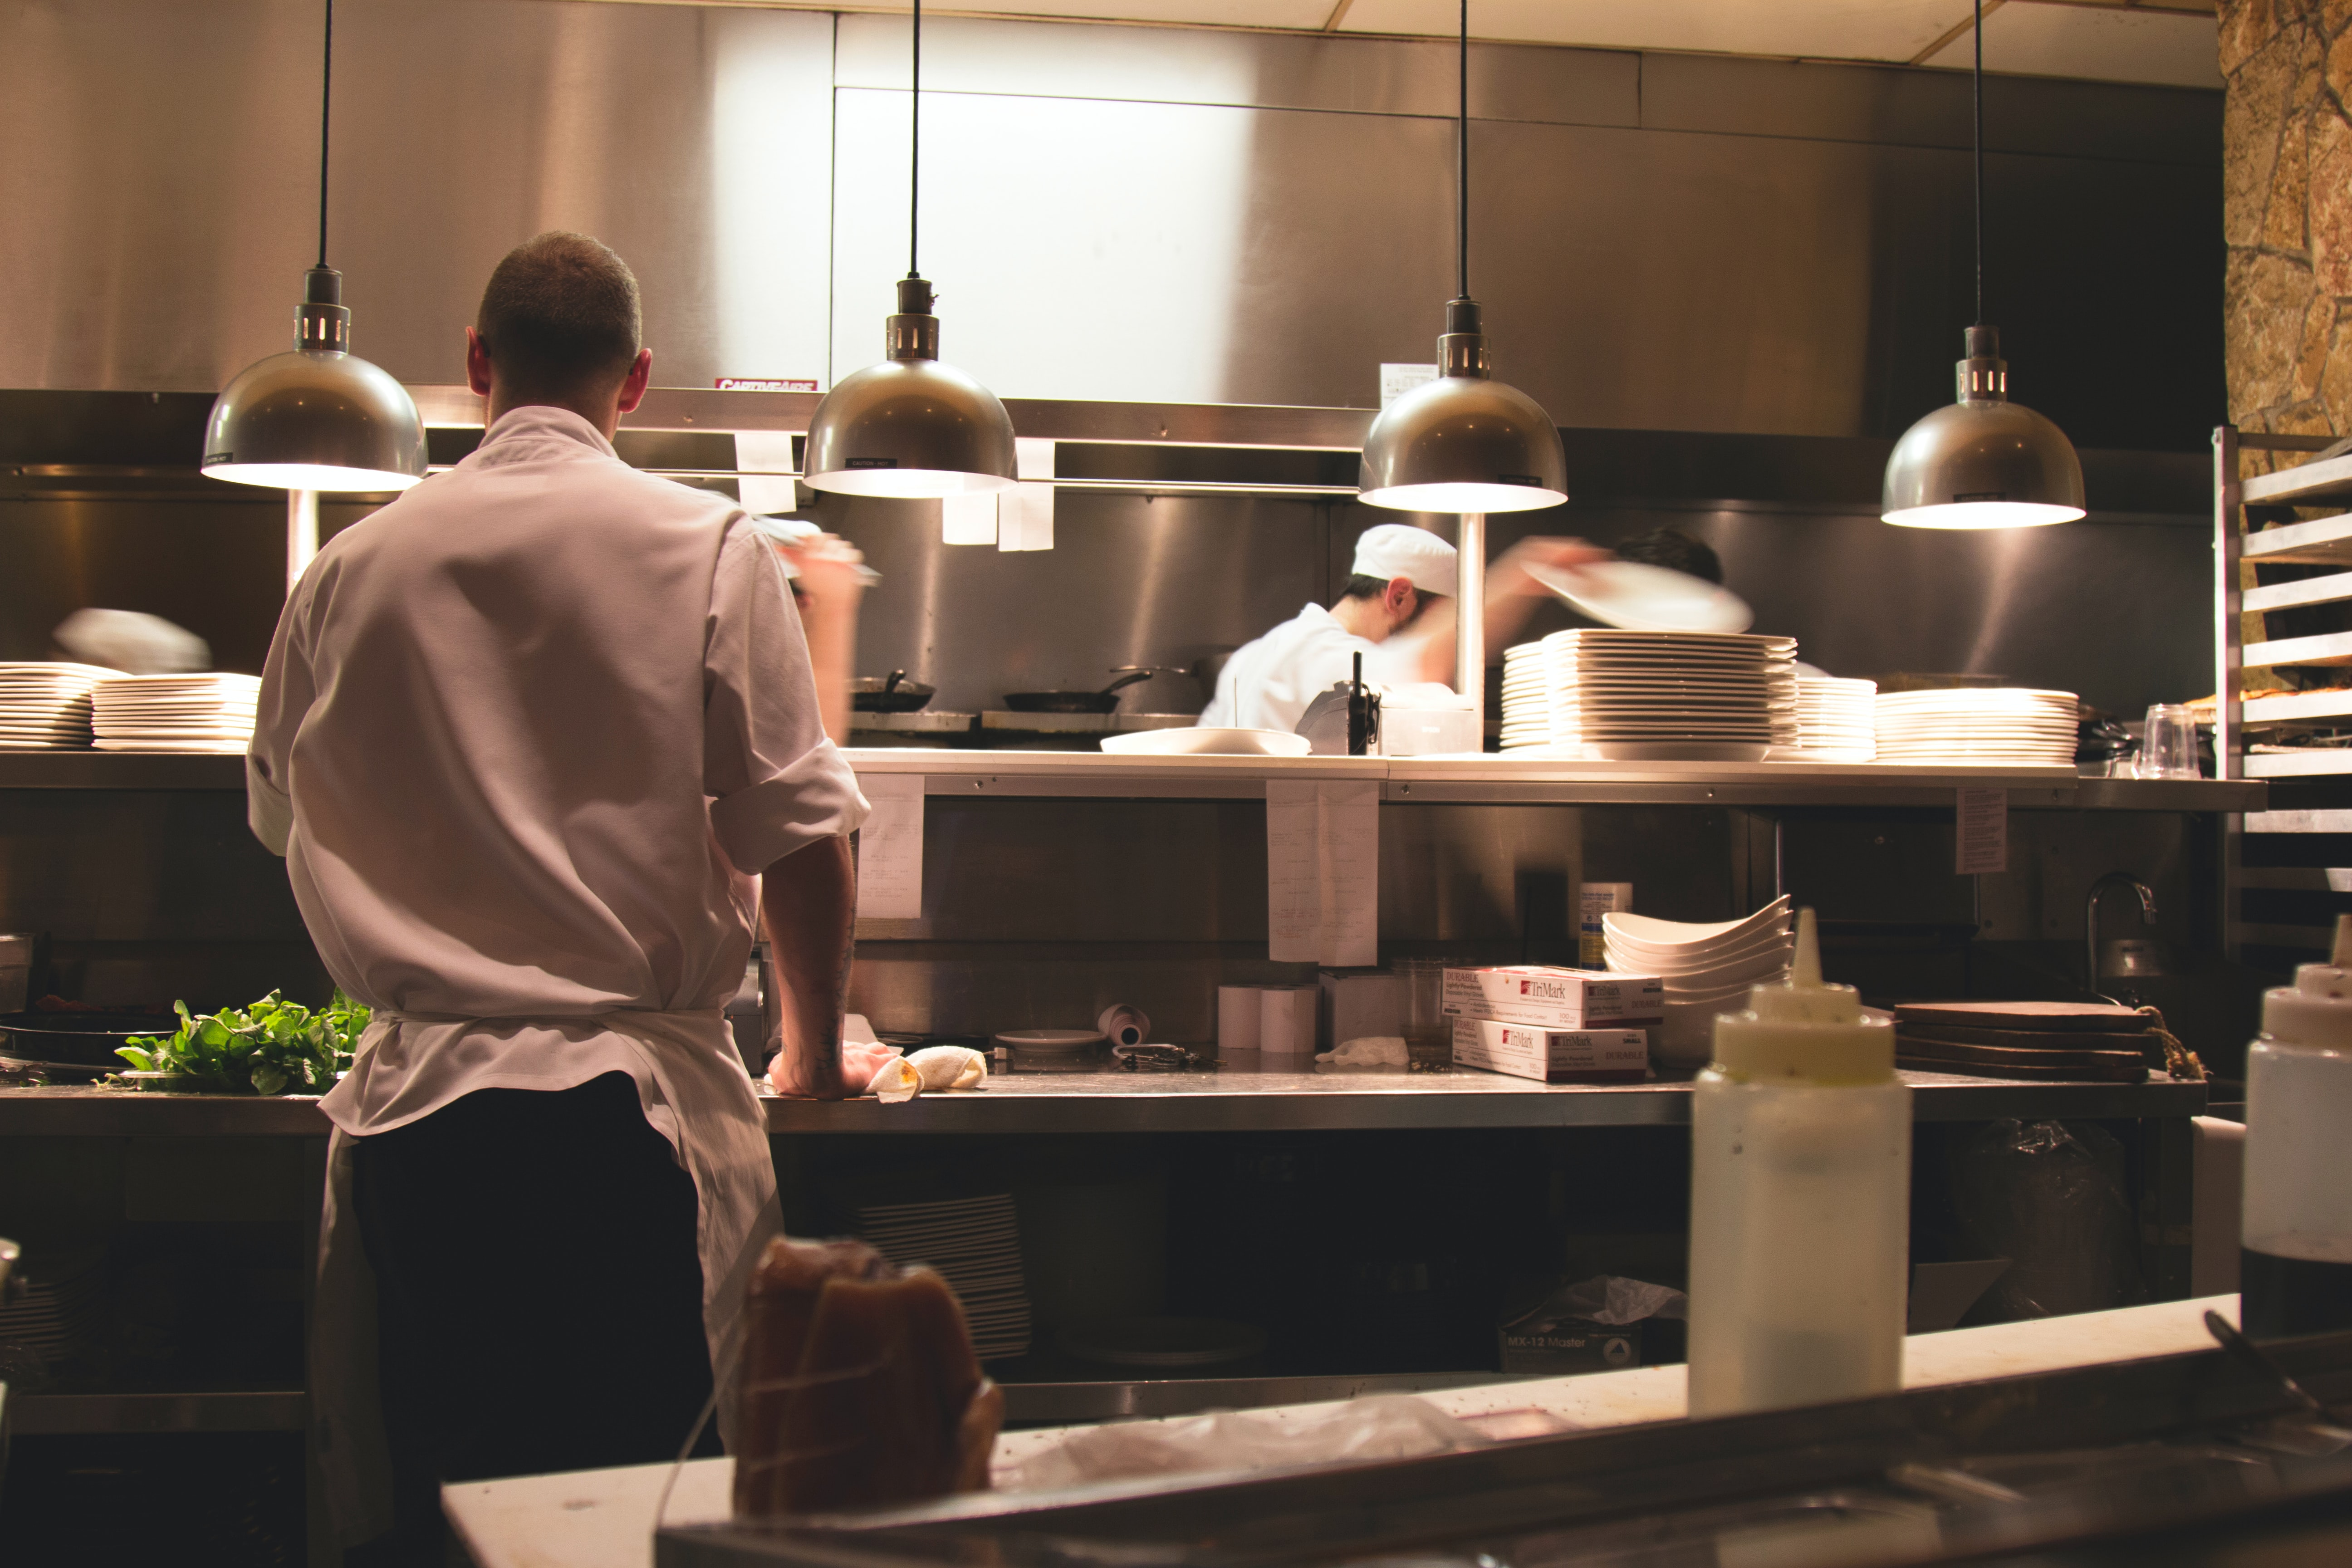 How To Staff A Restaurant Right: Positions, Training, Scheduling & More